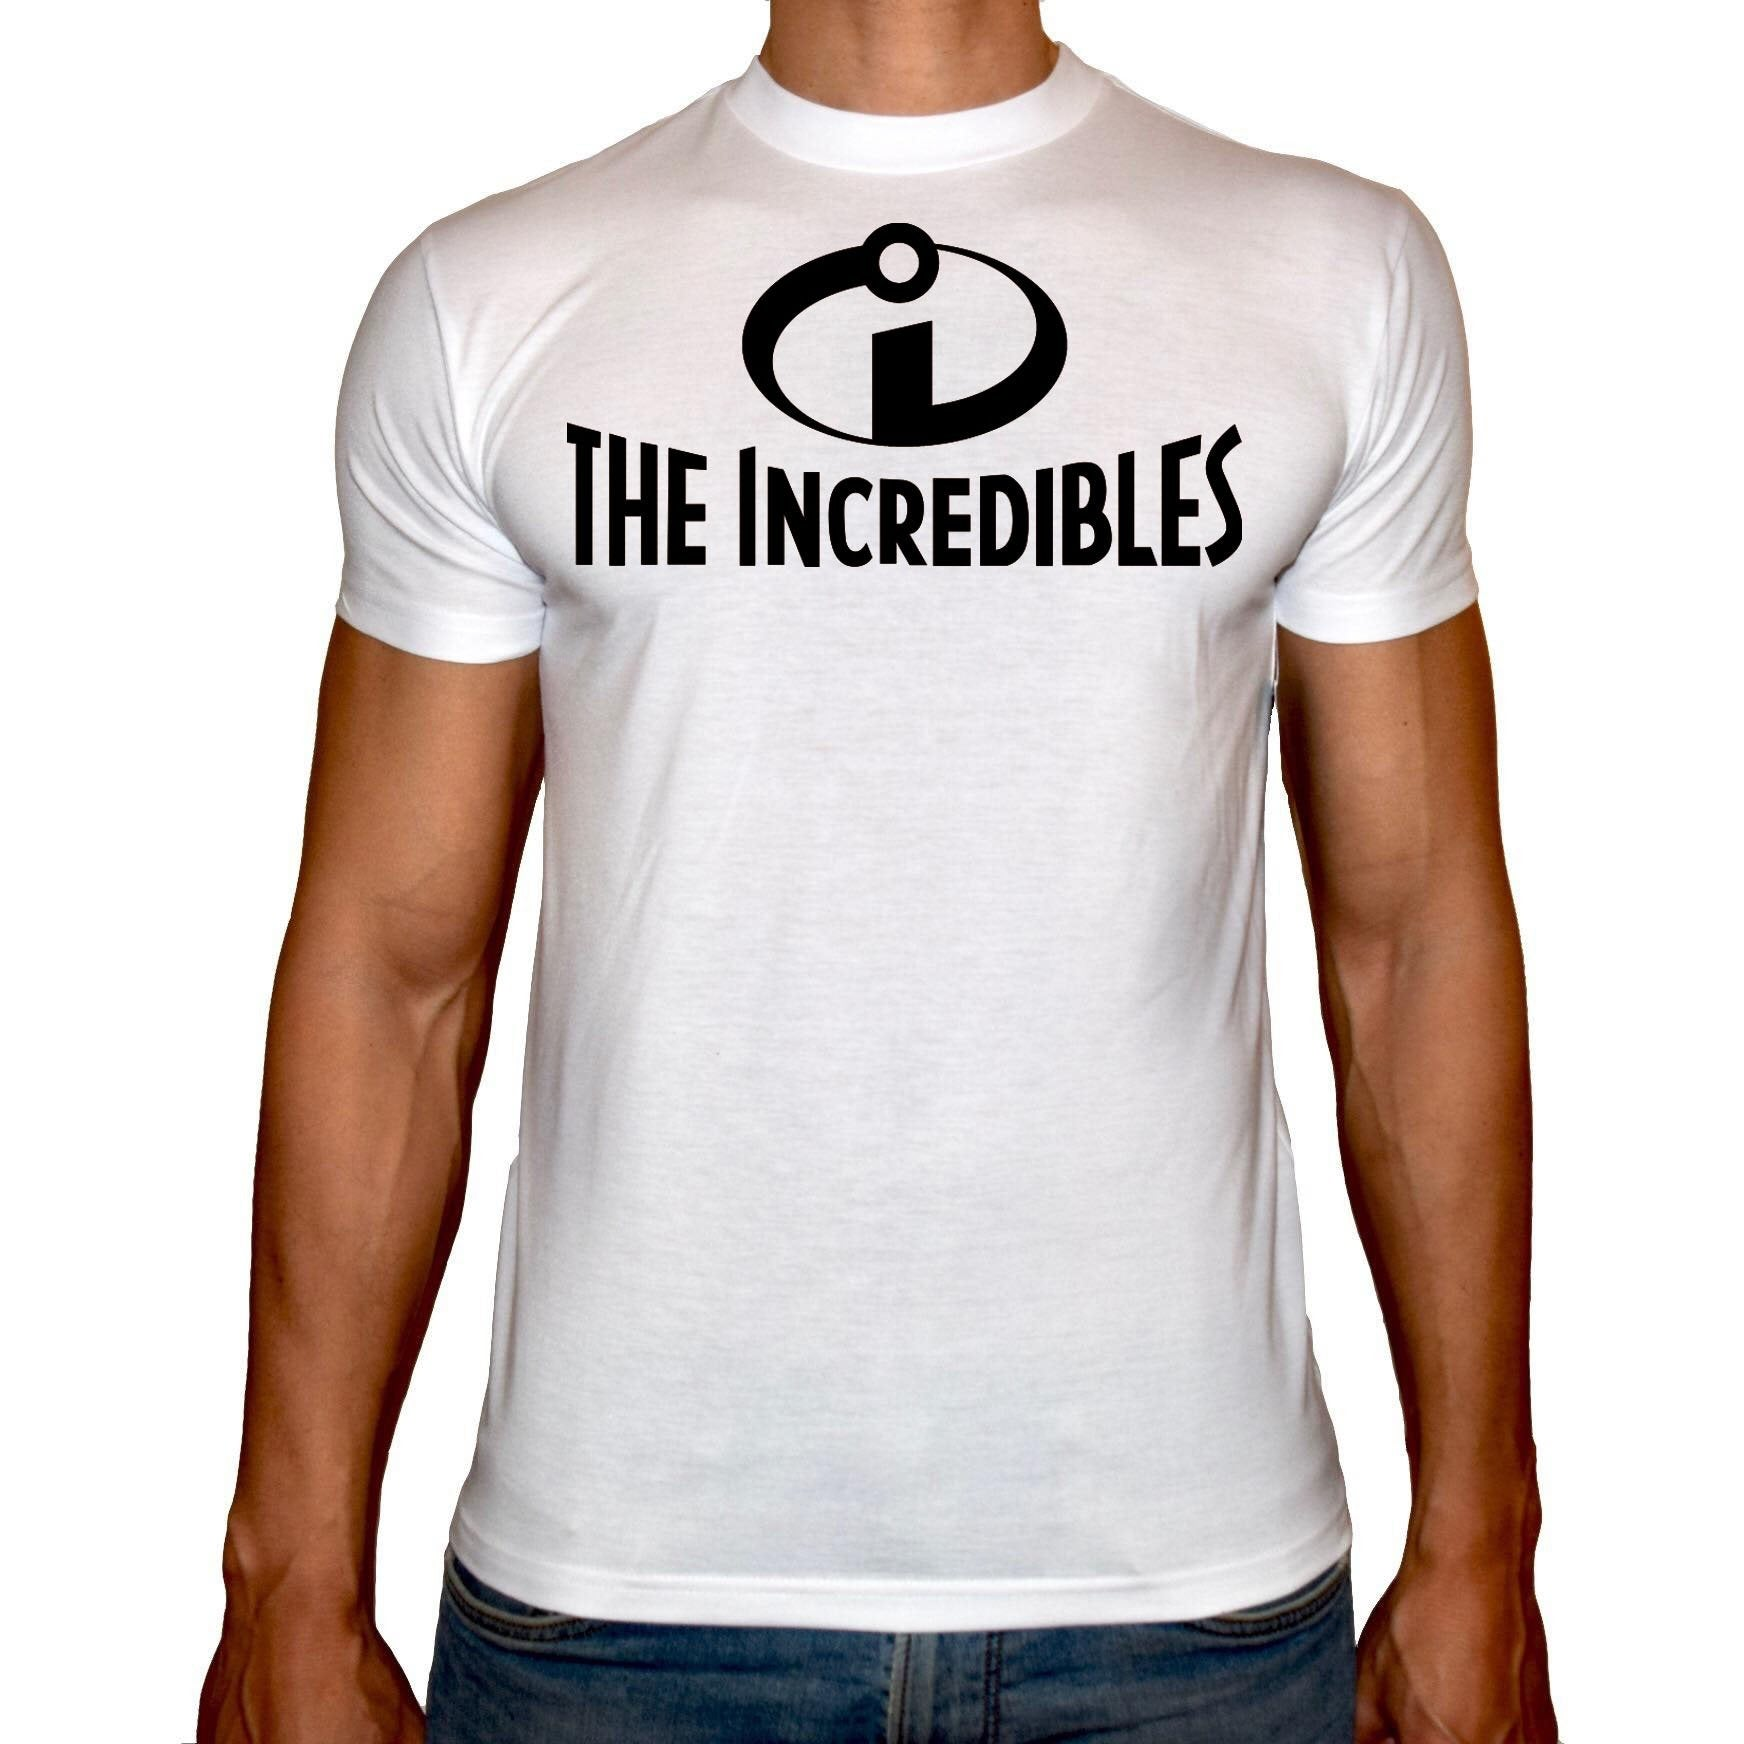 Phoenix WHITE Round Neck Printed T-Shirt Men (The incredibles)